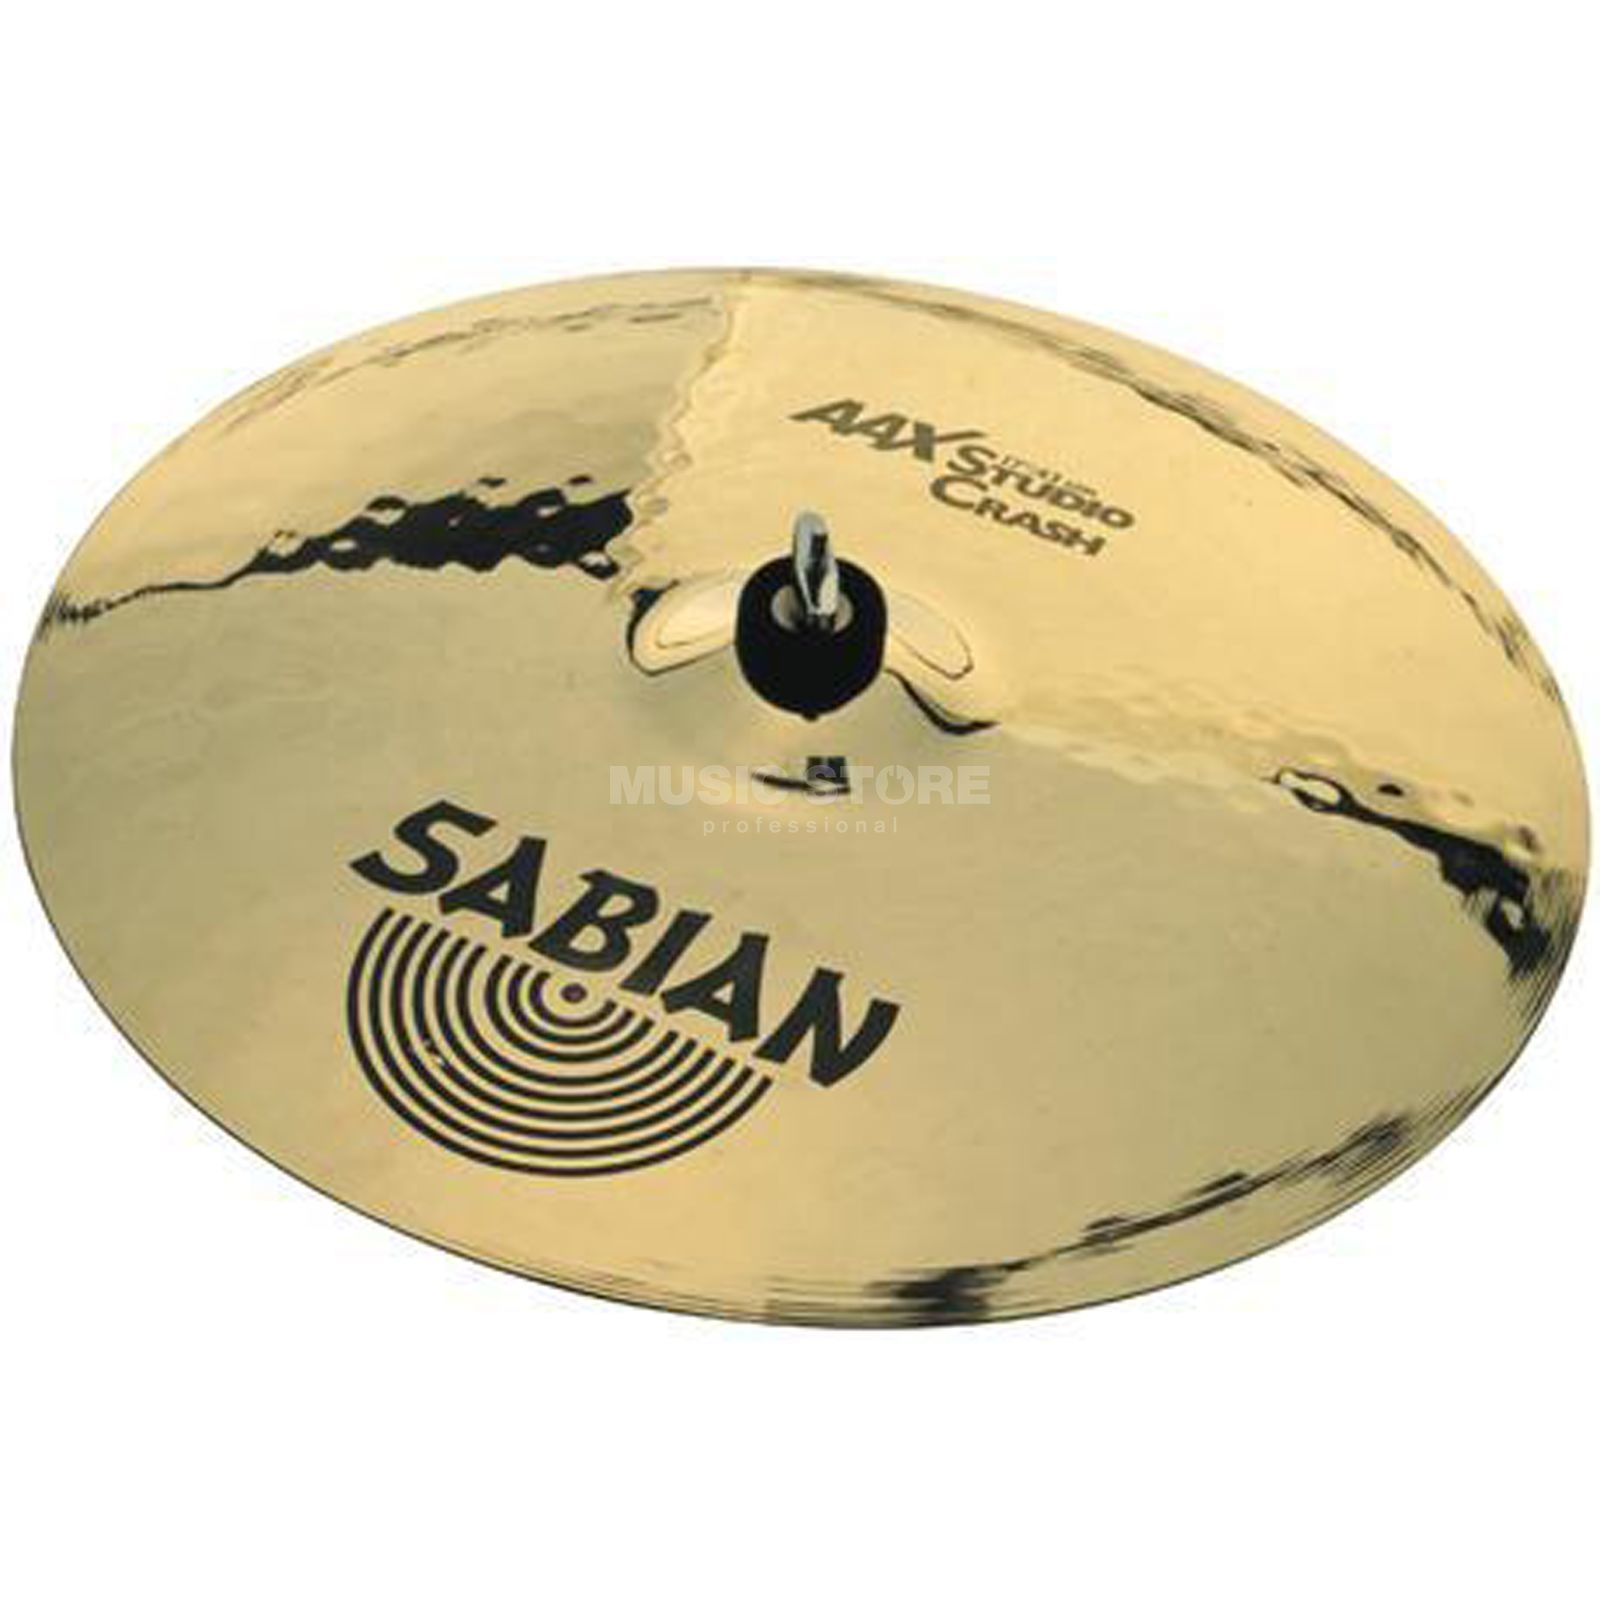 "Sabian AAX Studio Crash 16"" Brilliant Finish Product Image"